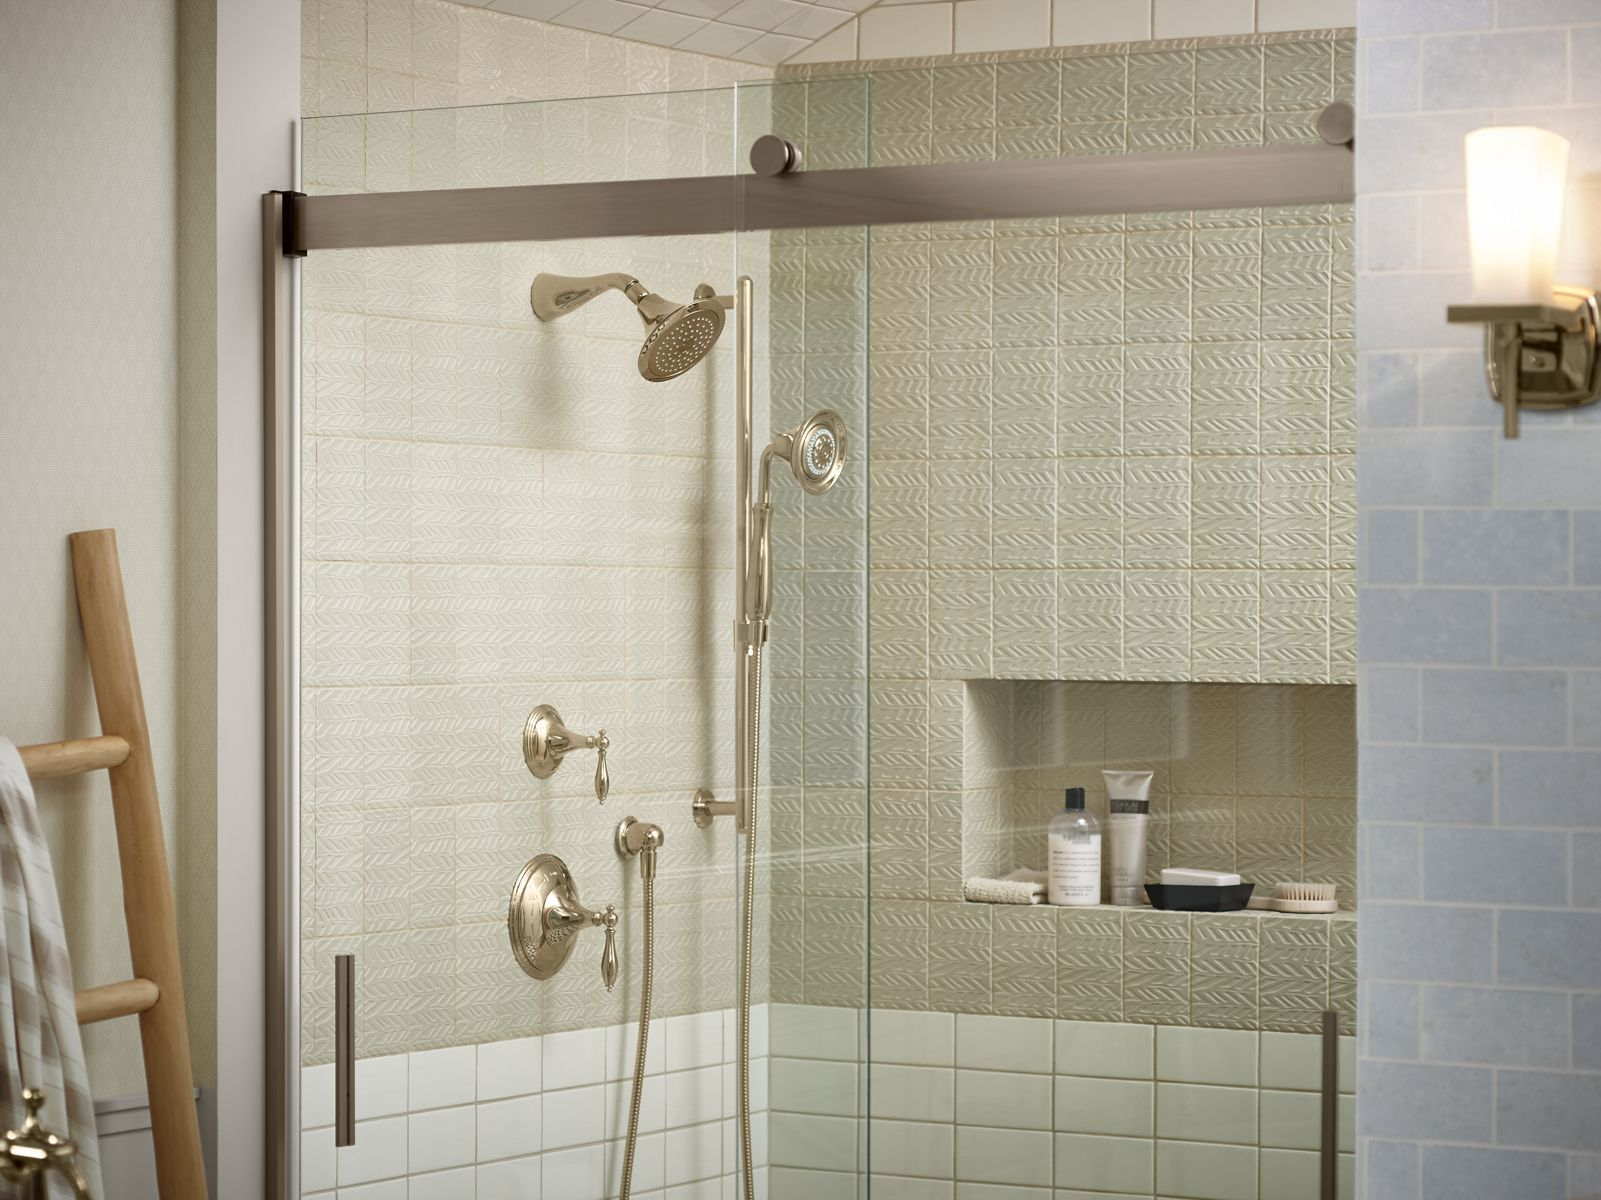 Simple Frameless Shower Doors Ideas - Contemporary shower doors for walk in showers Minimalist